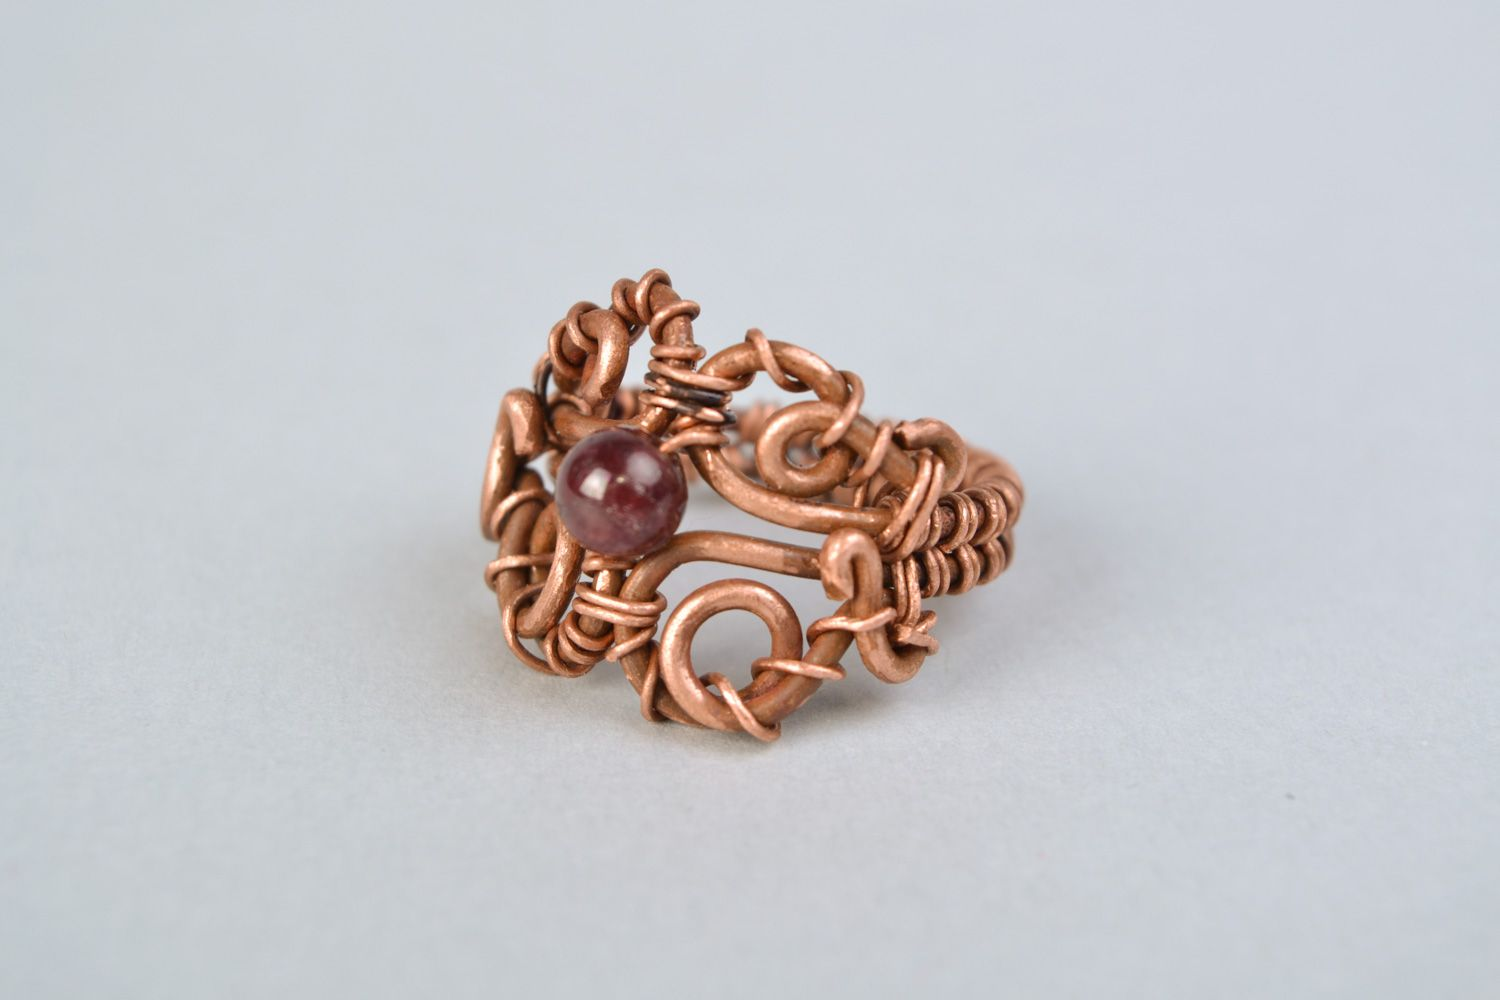 MADEHEART > Homemade wire wrap copper ring with garnet